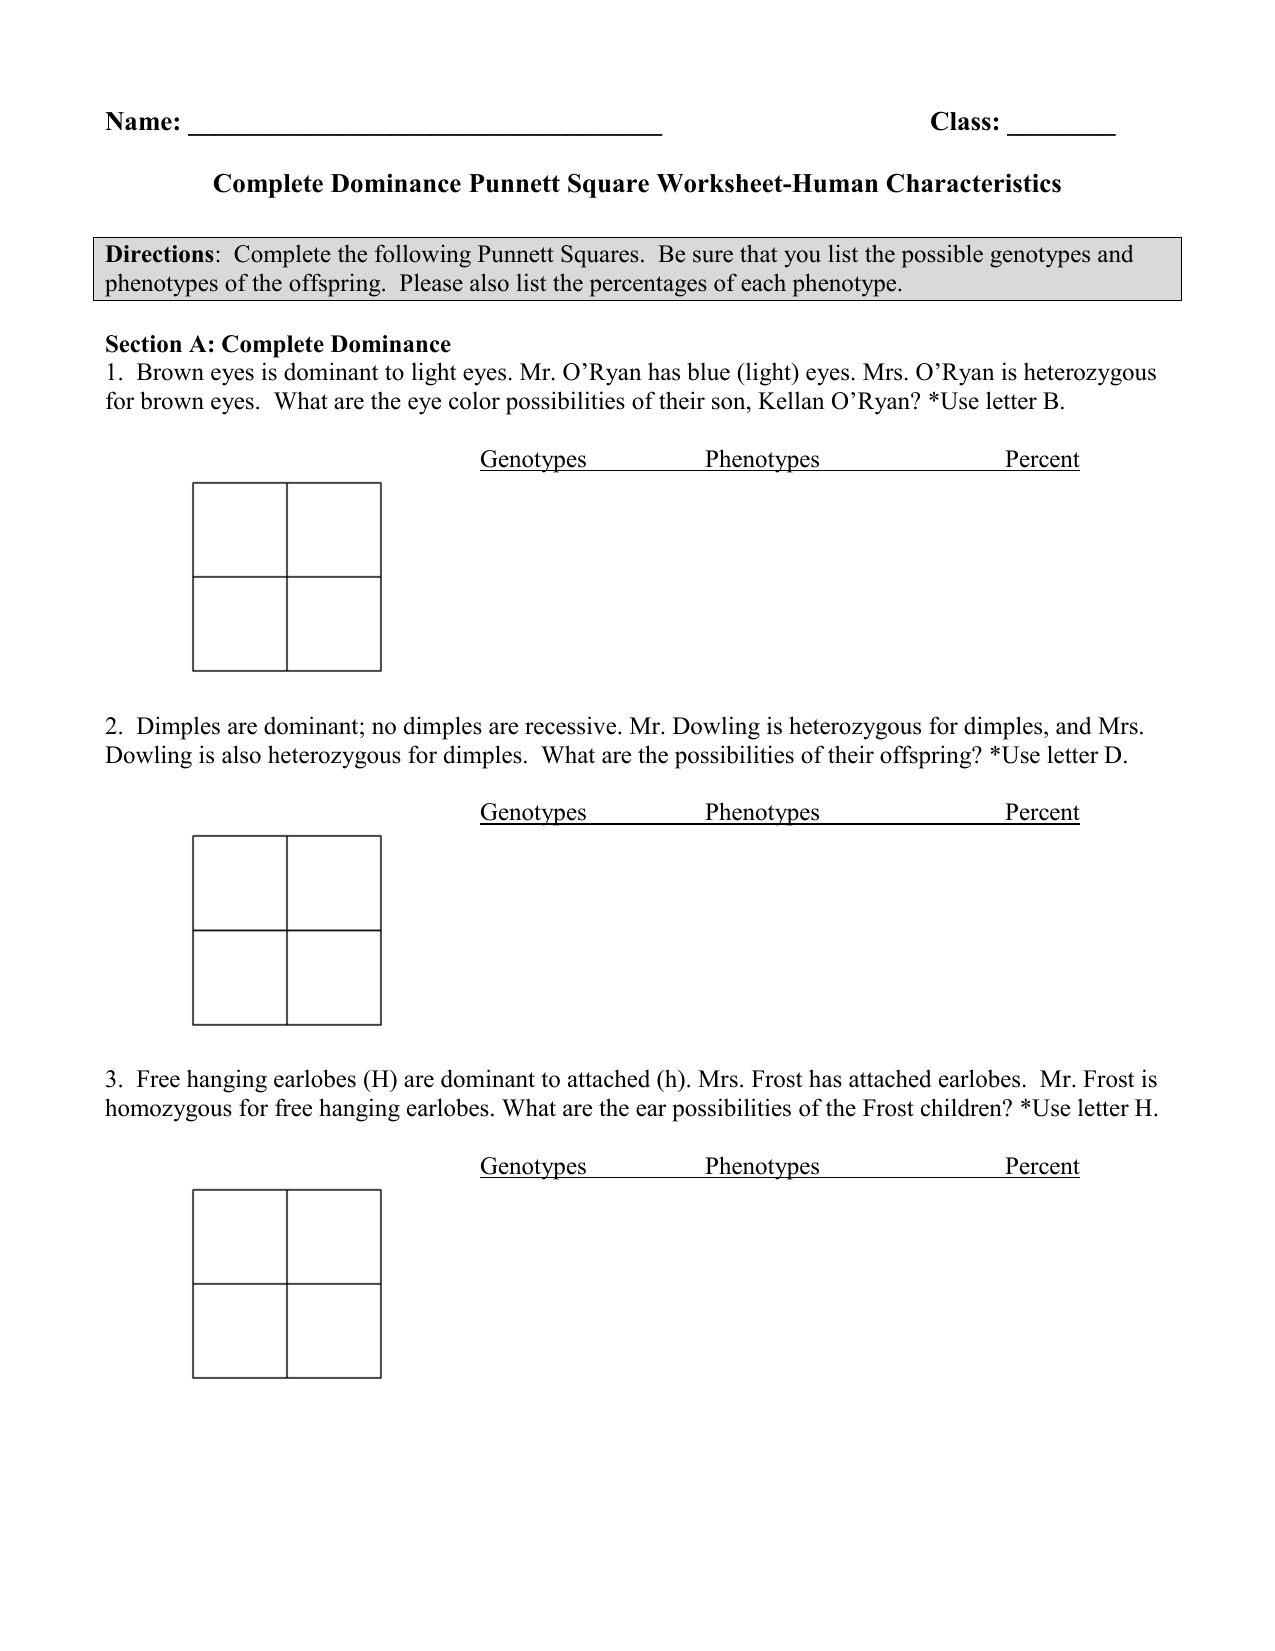 How to  plete a pun t square besides Pun t Square Practice Worksheet Answers   Lostranquillos together with Practice Pun t Squares Worksheet With Answers moreover plete Dominance Pun t Square Worksheet in addition Best Pun t Square Worksheet   ideas and images on Bing   Find what additionally Practice Pun t Squares Worksheet with Answers   Siteraven further Pun t Square Worksheet With Answers Practice Answer Key further Inheritance Activities  Ge ics Terminology and Pun t Squares by in addition Practice Pun t Squares Worksheet with Answers   Siteraven together with Ge ics Practice Problems 3 Monohybrid Worksheet 1 Answers Pun t further Pun t Square Lesson Plans   Worksheets   Lesson Pla likewise Pun t Square Practice Worksheets with Answer Keys by The Science additionally Worksheet Pun t Square Answer Key Gr  Section 12 4 Mutations further Best Pun t Square Worksheet   ideas and images on Bing   Find what additionally Ge ics Monohybrid Pun t Square Practice Packet  24 Problems besides Pun t Squares Review Worksheet. on punnett square worksheet answer key